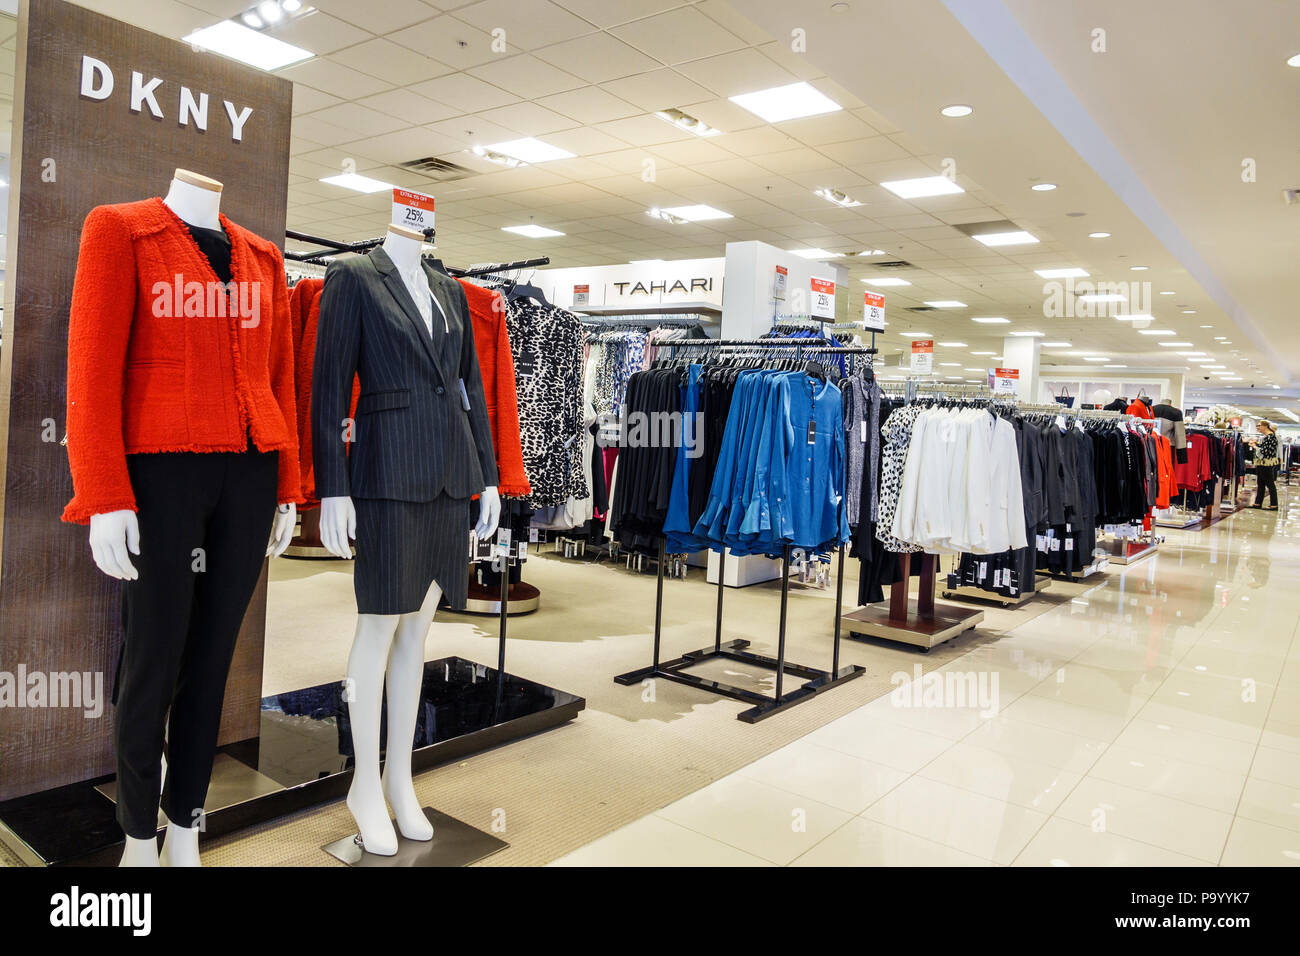 ac0e3157750e9 Orlando Florida The Mall at Millenia shopping Macy's department store  women's clothing designer DKNY career apparel mannequin display interior